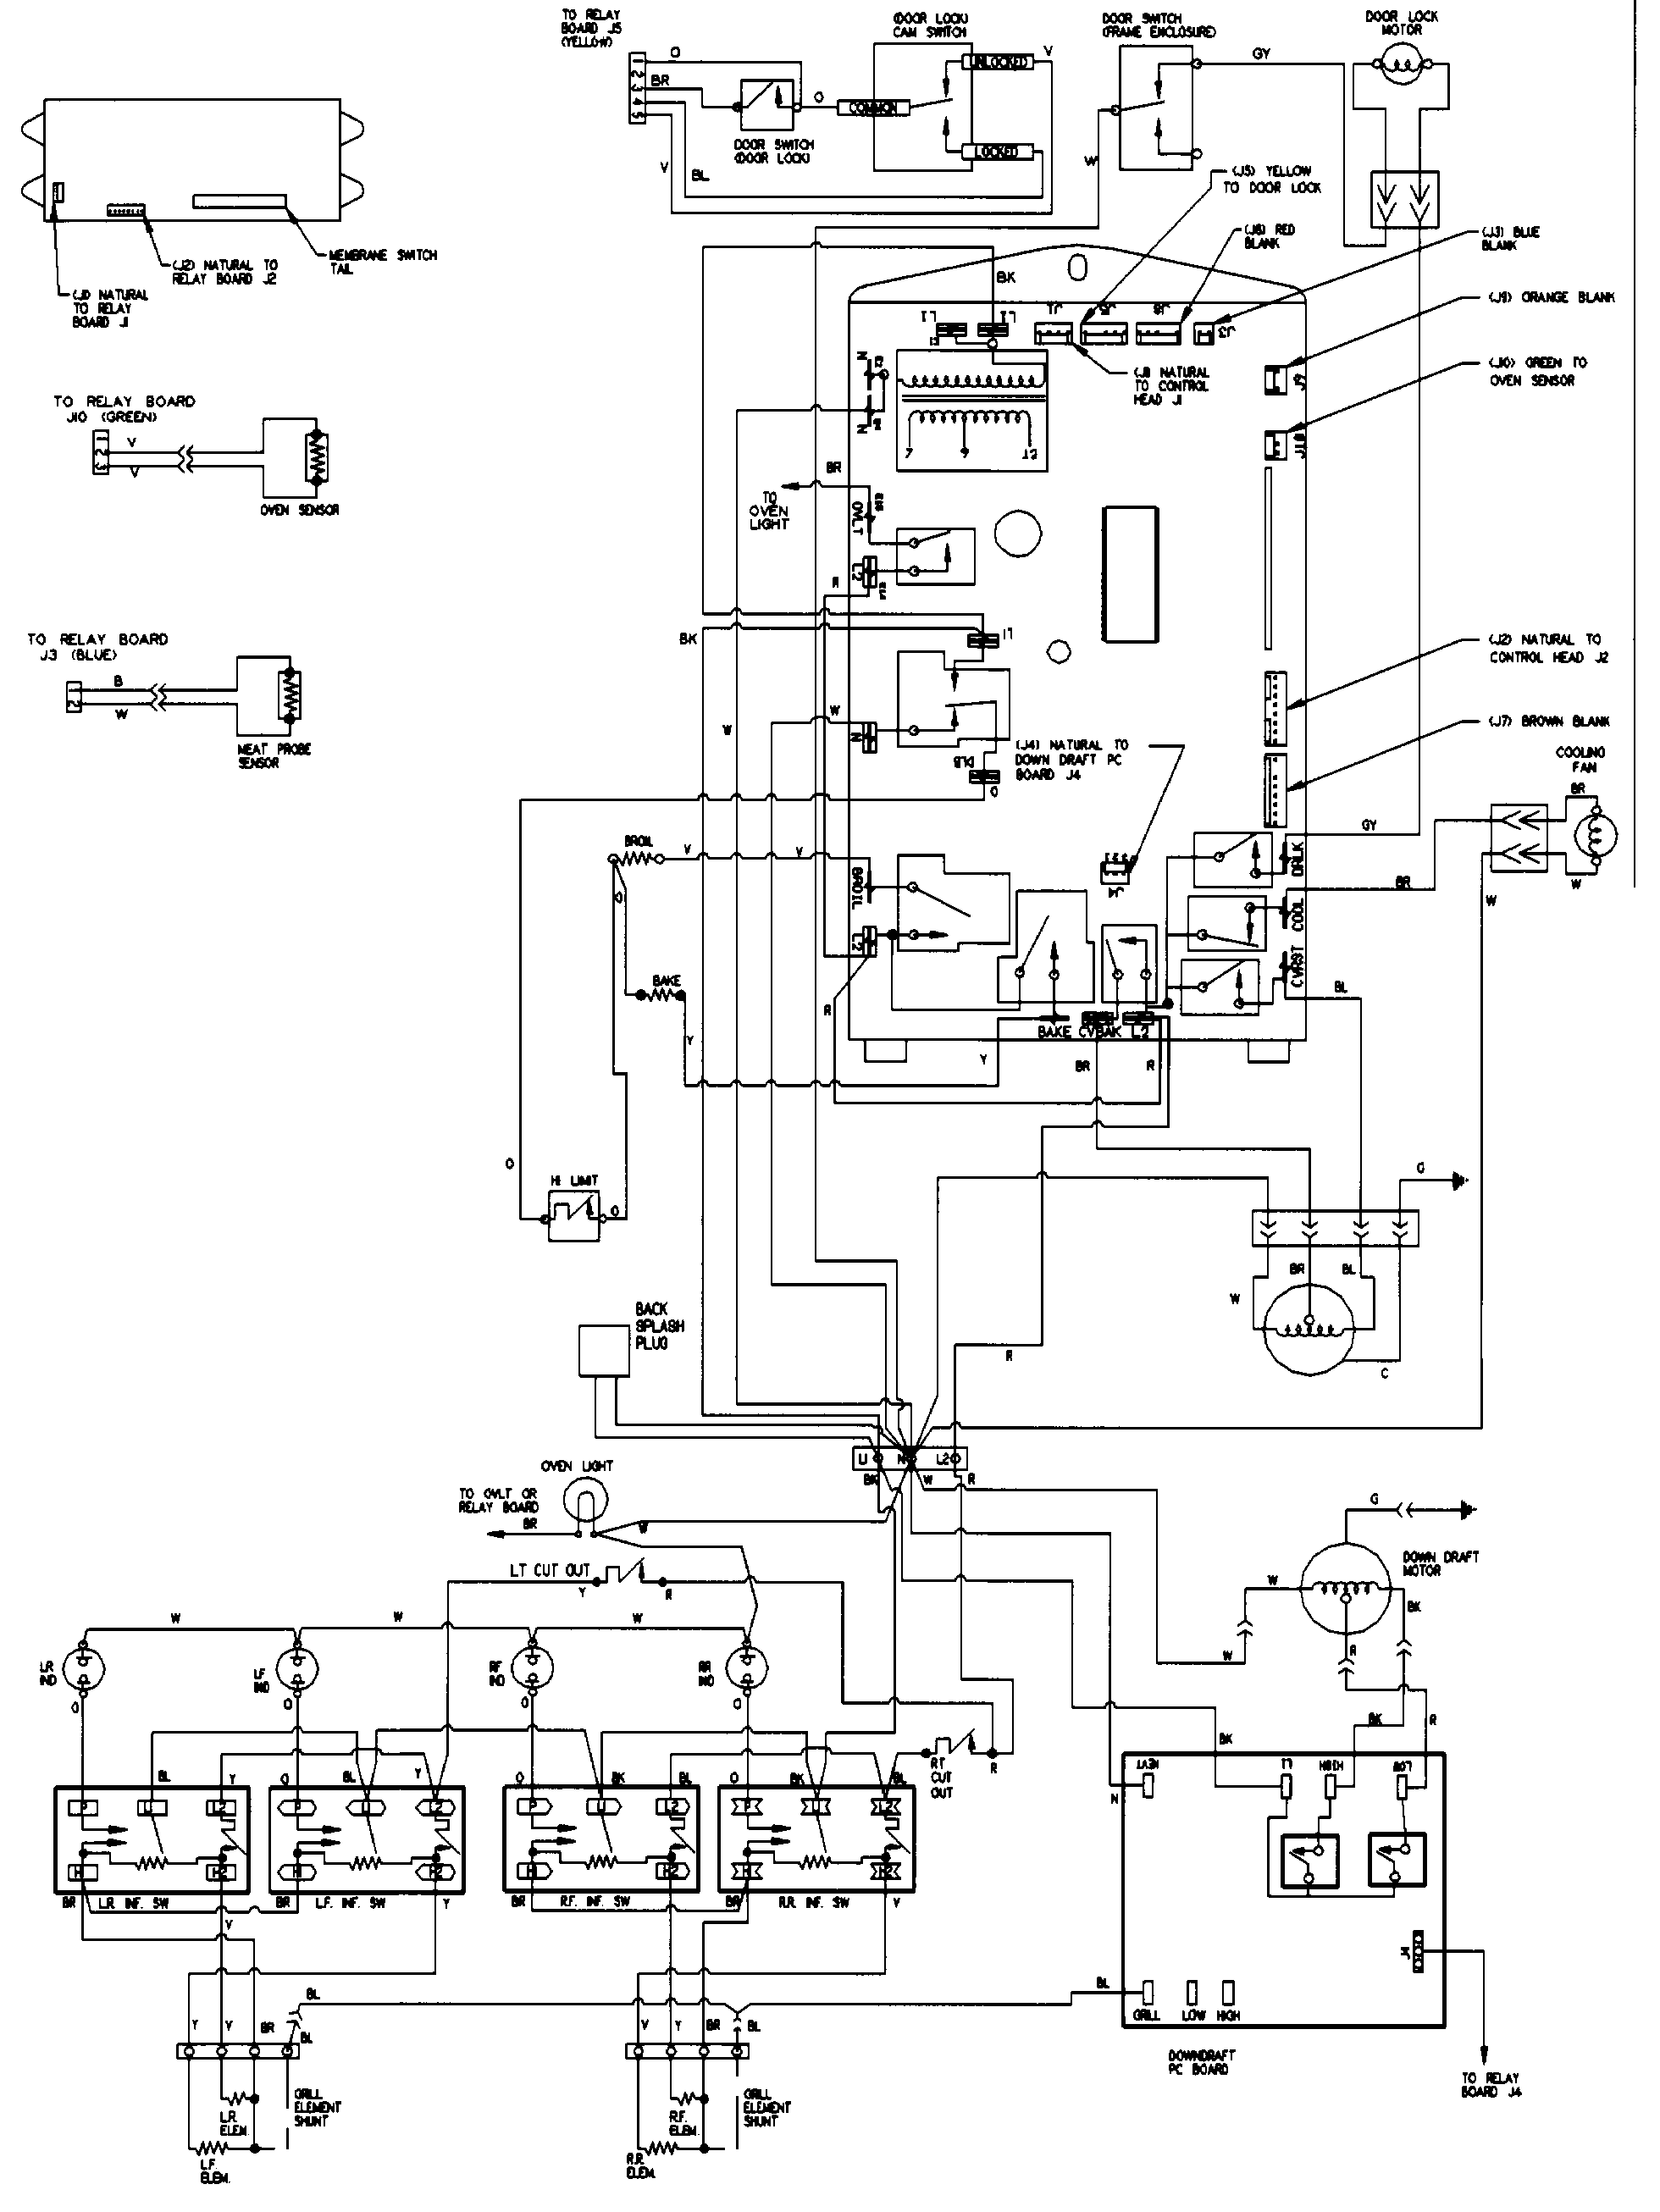 Wiring Diagram For Whirlpool Oven Opinions About Wiring Diagram \u2022  Maytag Oven Wiring Diagram Whirlpool Double Oven Wiring Diagram